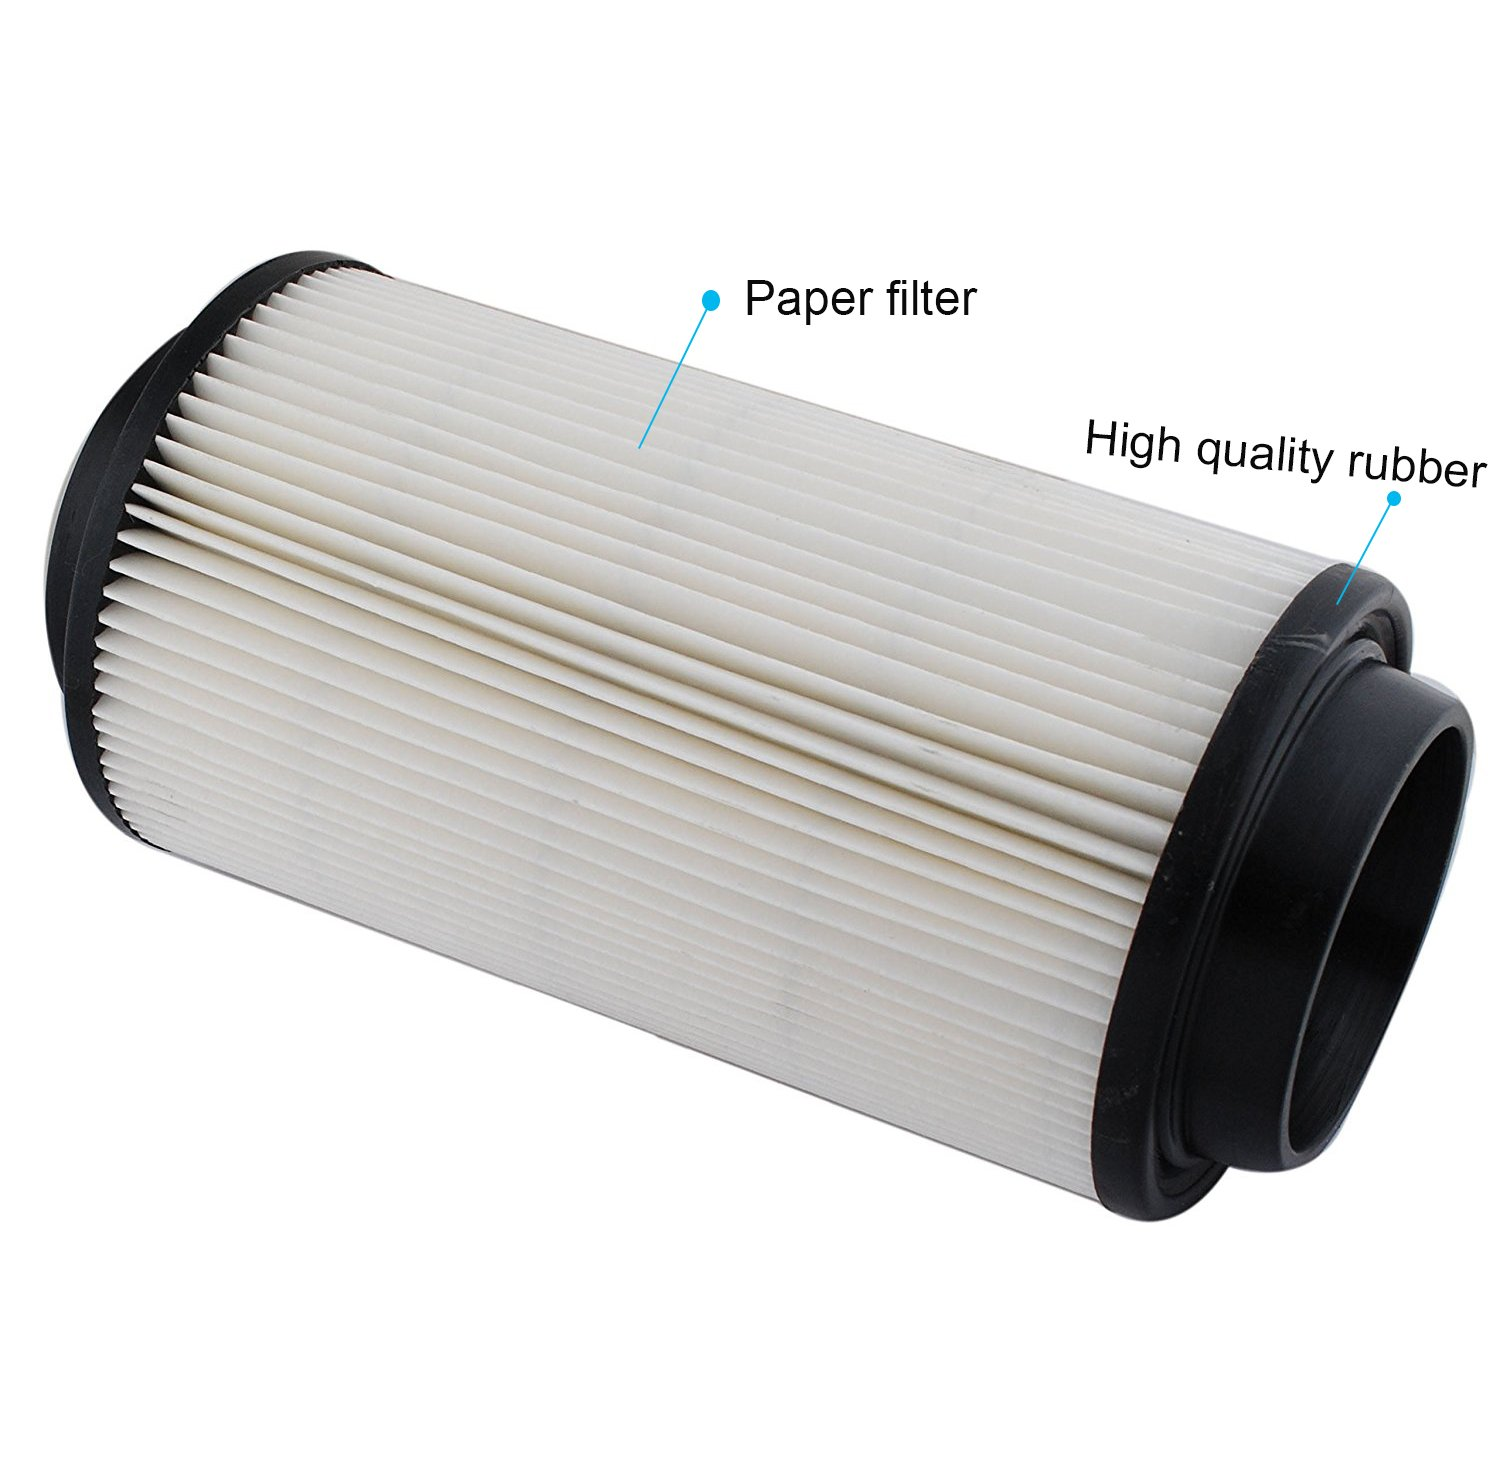 Amazon.com: Podoy 7080595 Air filter for Polaris Sportsman Scrambler Magnum  400 500 550 570 600 700 800 850 ATV Parts: Automotive